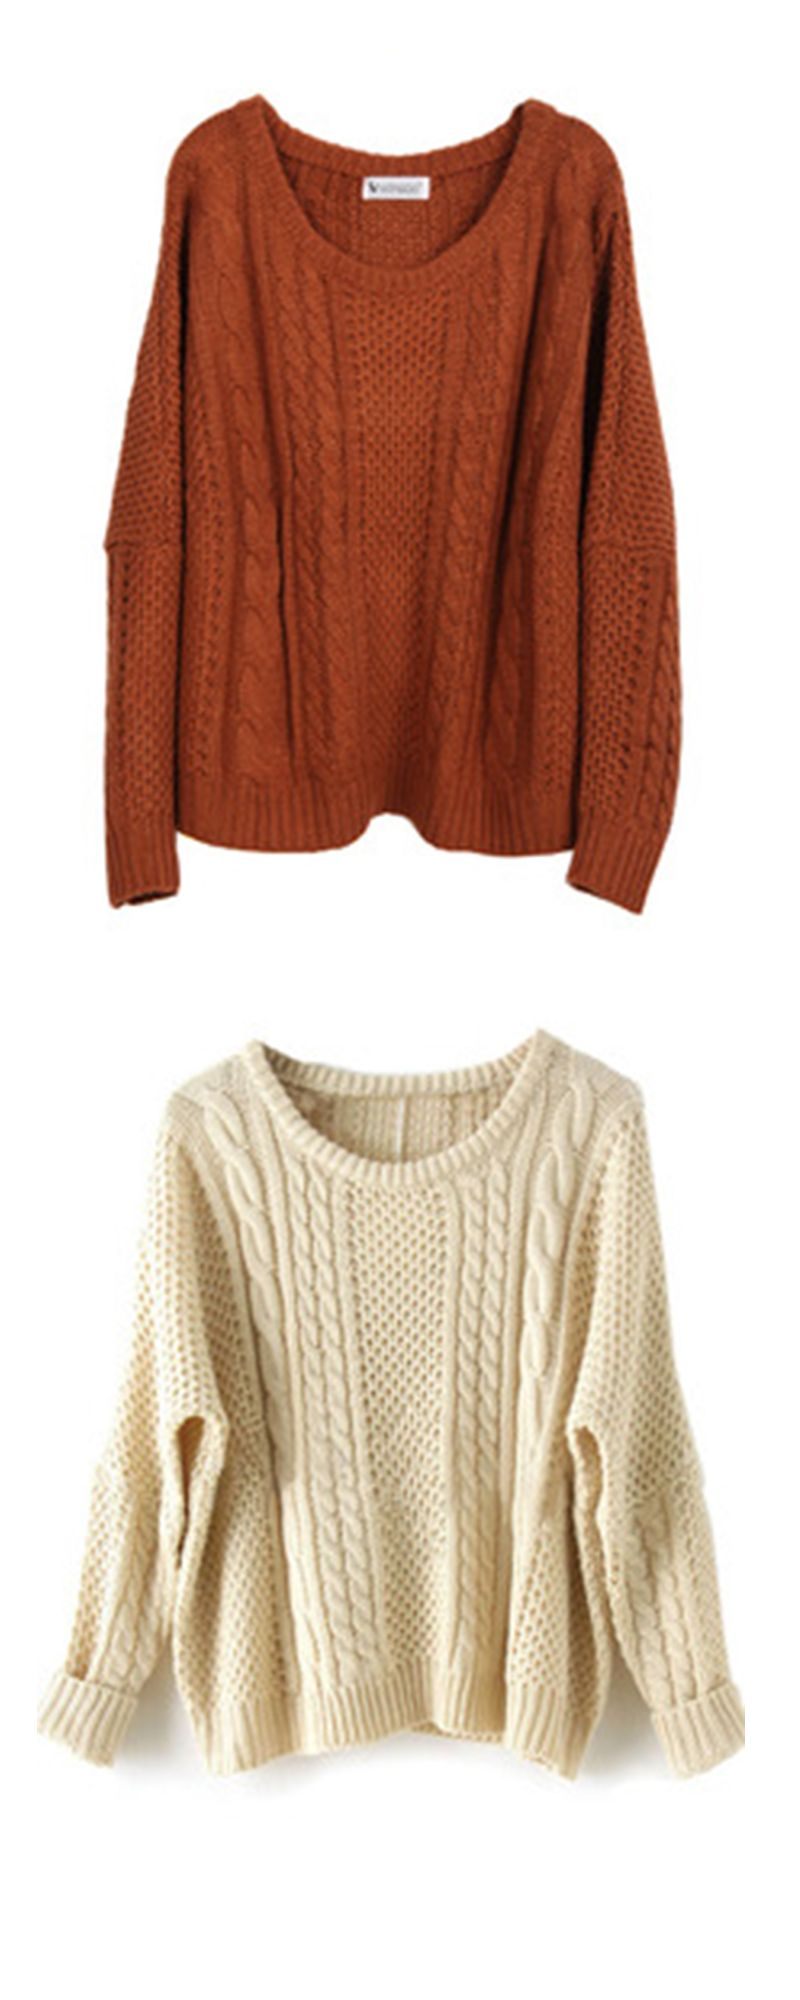 b6ac254814936 Loose Cable-Knit Sweater series : Apricot/Khaki Batwing Long Sleeve  Supersoft Pullovers Sweater .Really Really super soft !